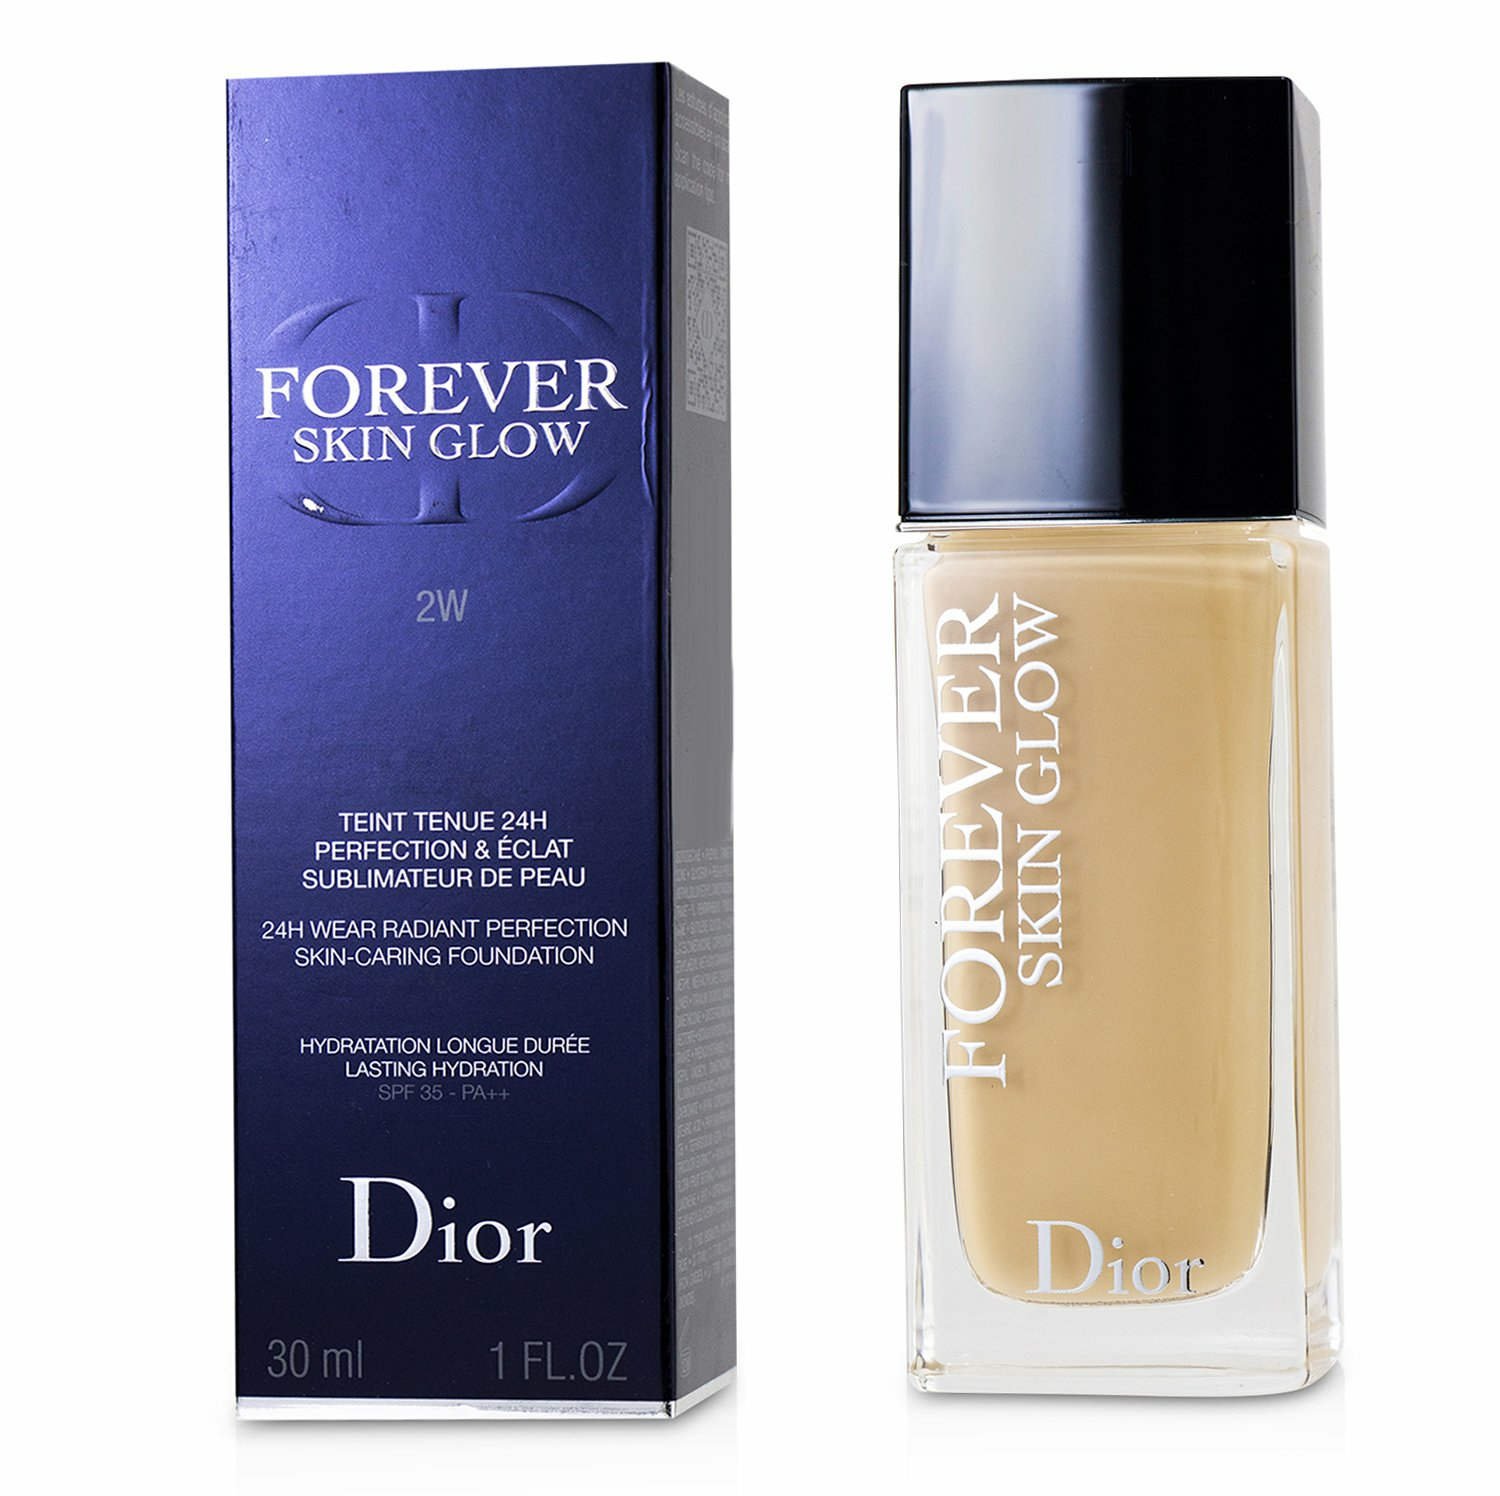 Christian Dior Women's # 1N Forever Skin Glow 24H Wear Radiant Perfection Foundation Spf 35